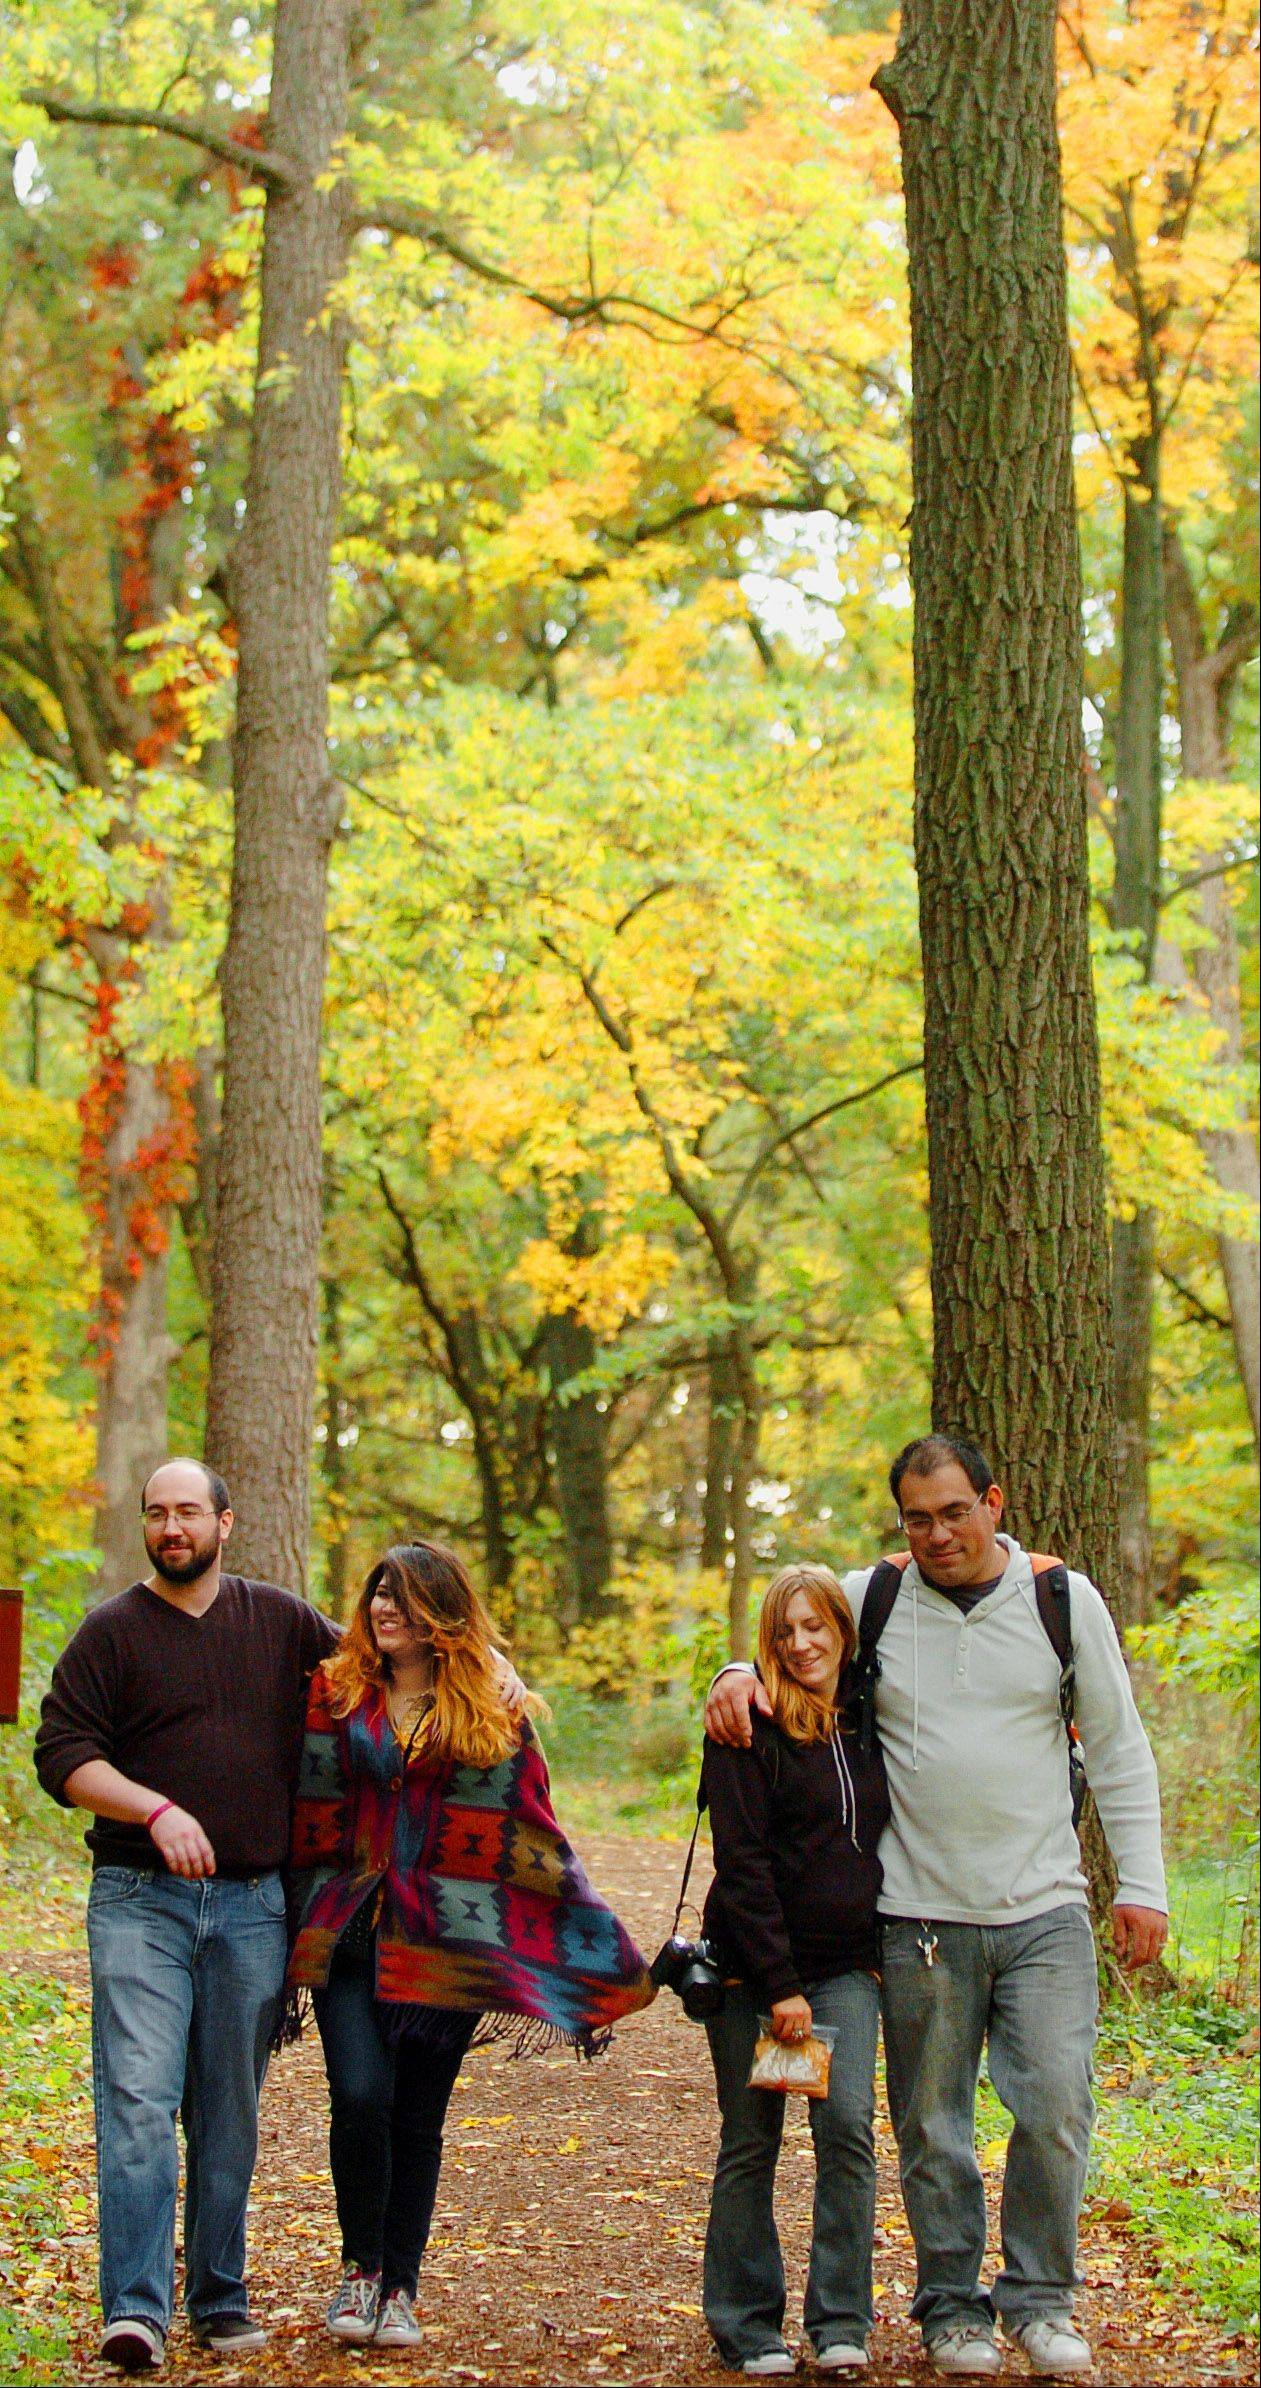 Jeremy Bennett, left, of Schaumburg and Polett Jasso of Chicago walk with Kristen Olivares and Steve Olivares both of Streamwood on a recent walk through the Morton Arboretum in Lisle. Peak color is expected to be some time late next week.